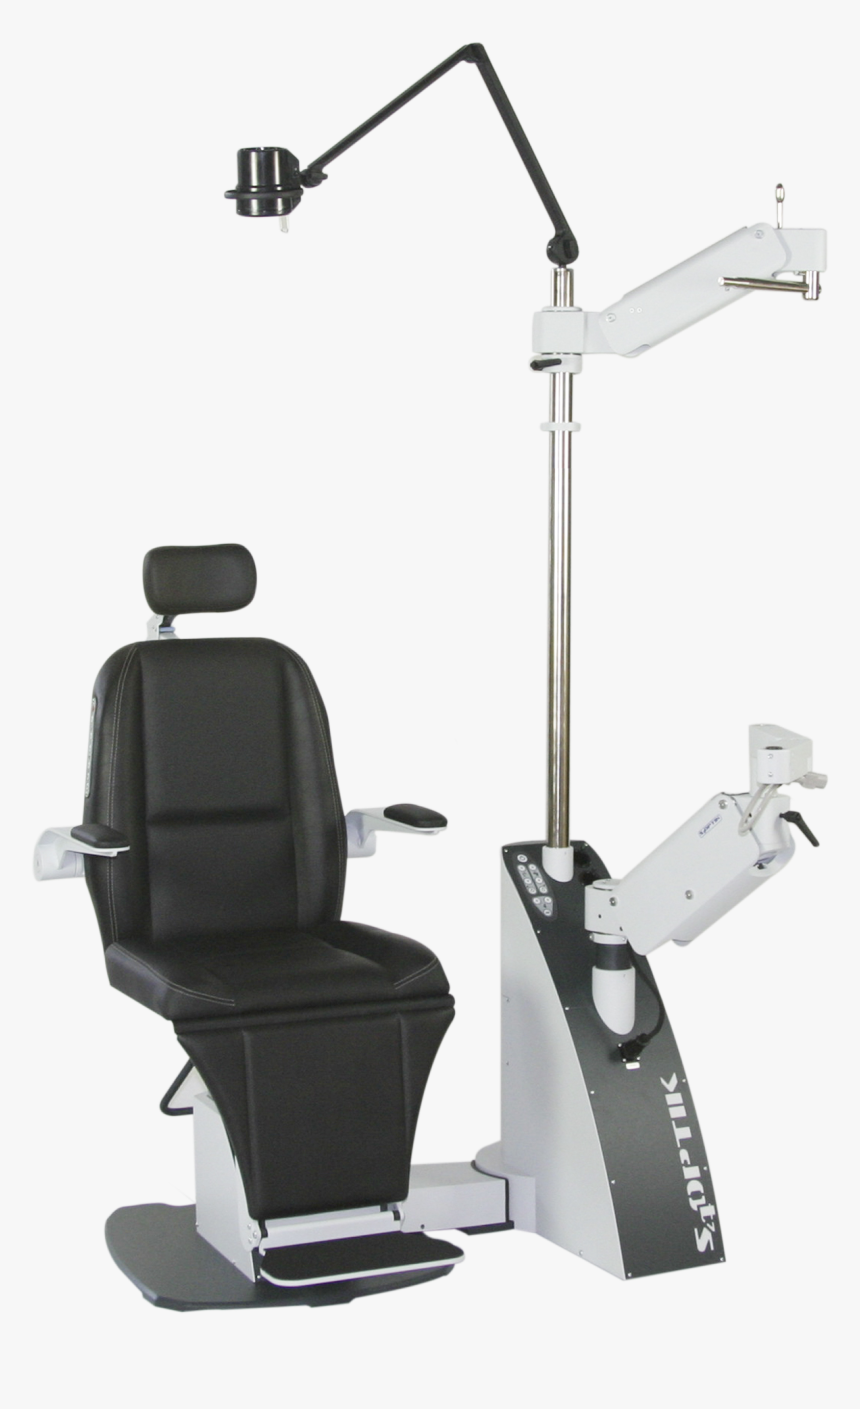 S4optik 1800 Combo Chair And Stand, HD Png Download, Free Download